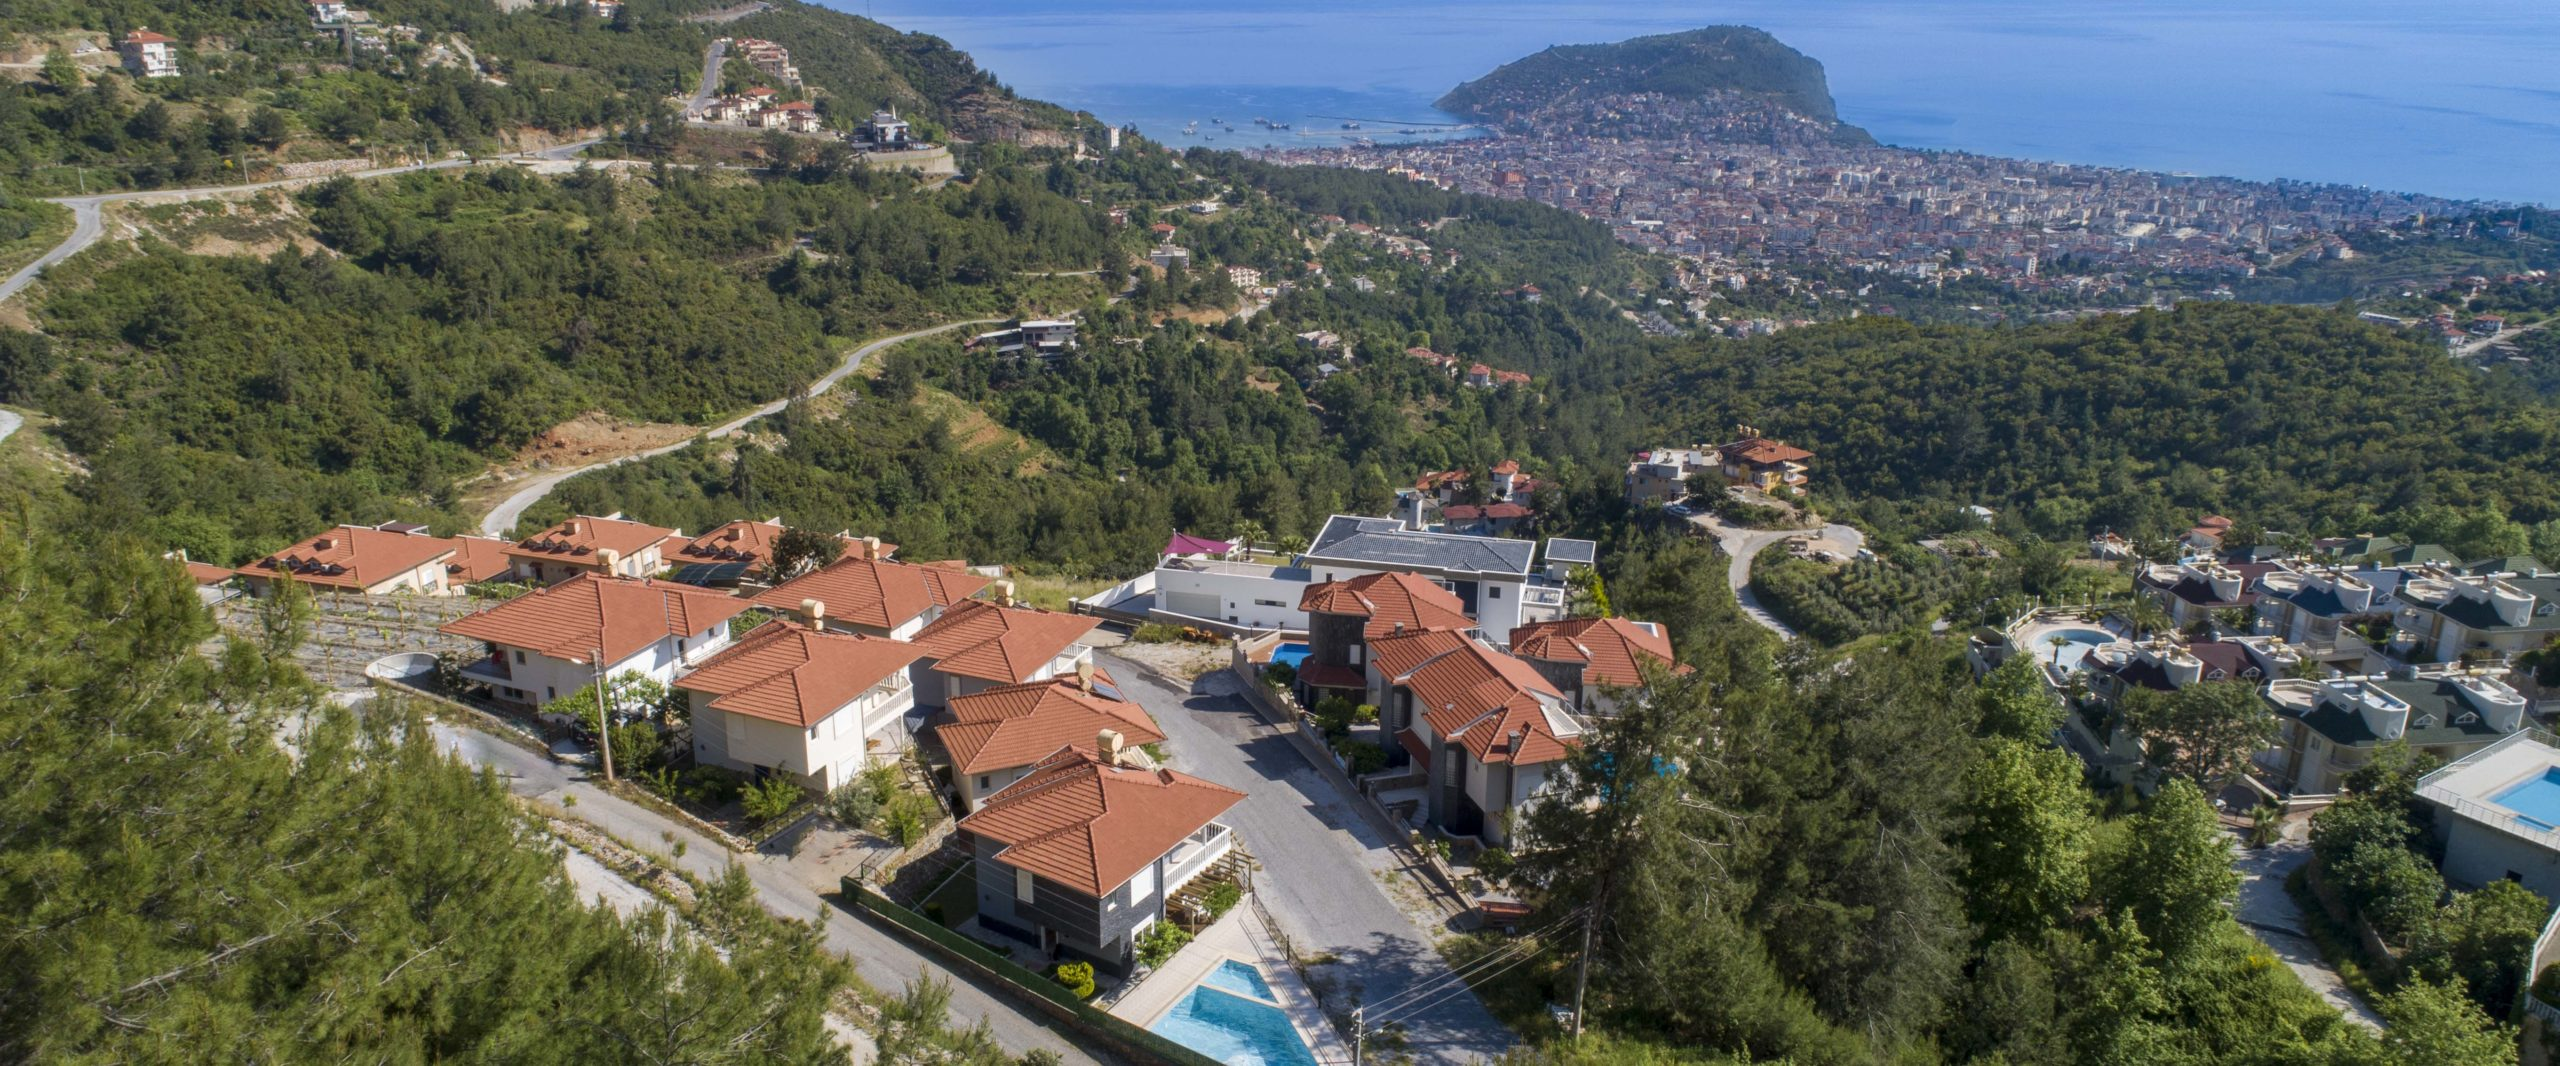 Villa for Rent in Alanya with Sea, Castle and Nature Views